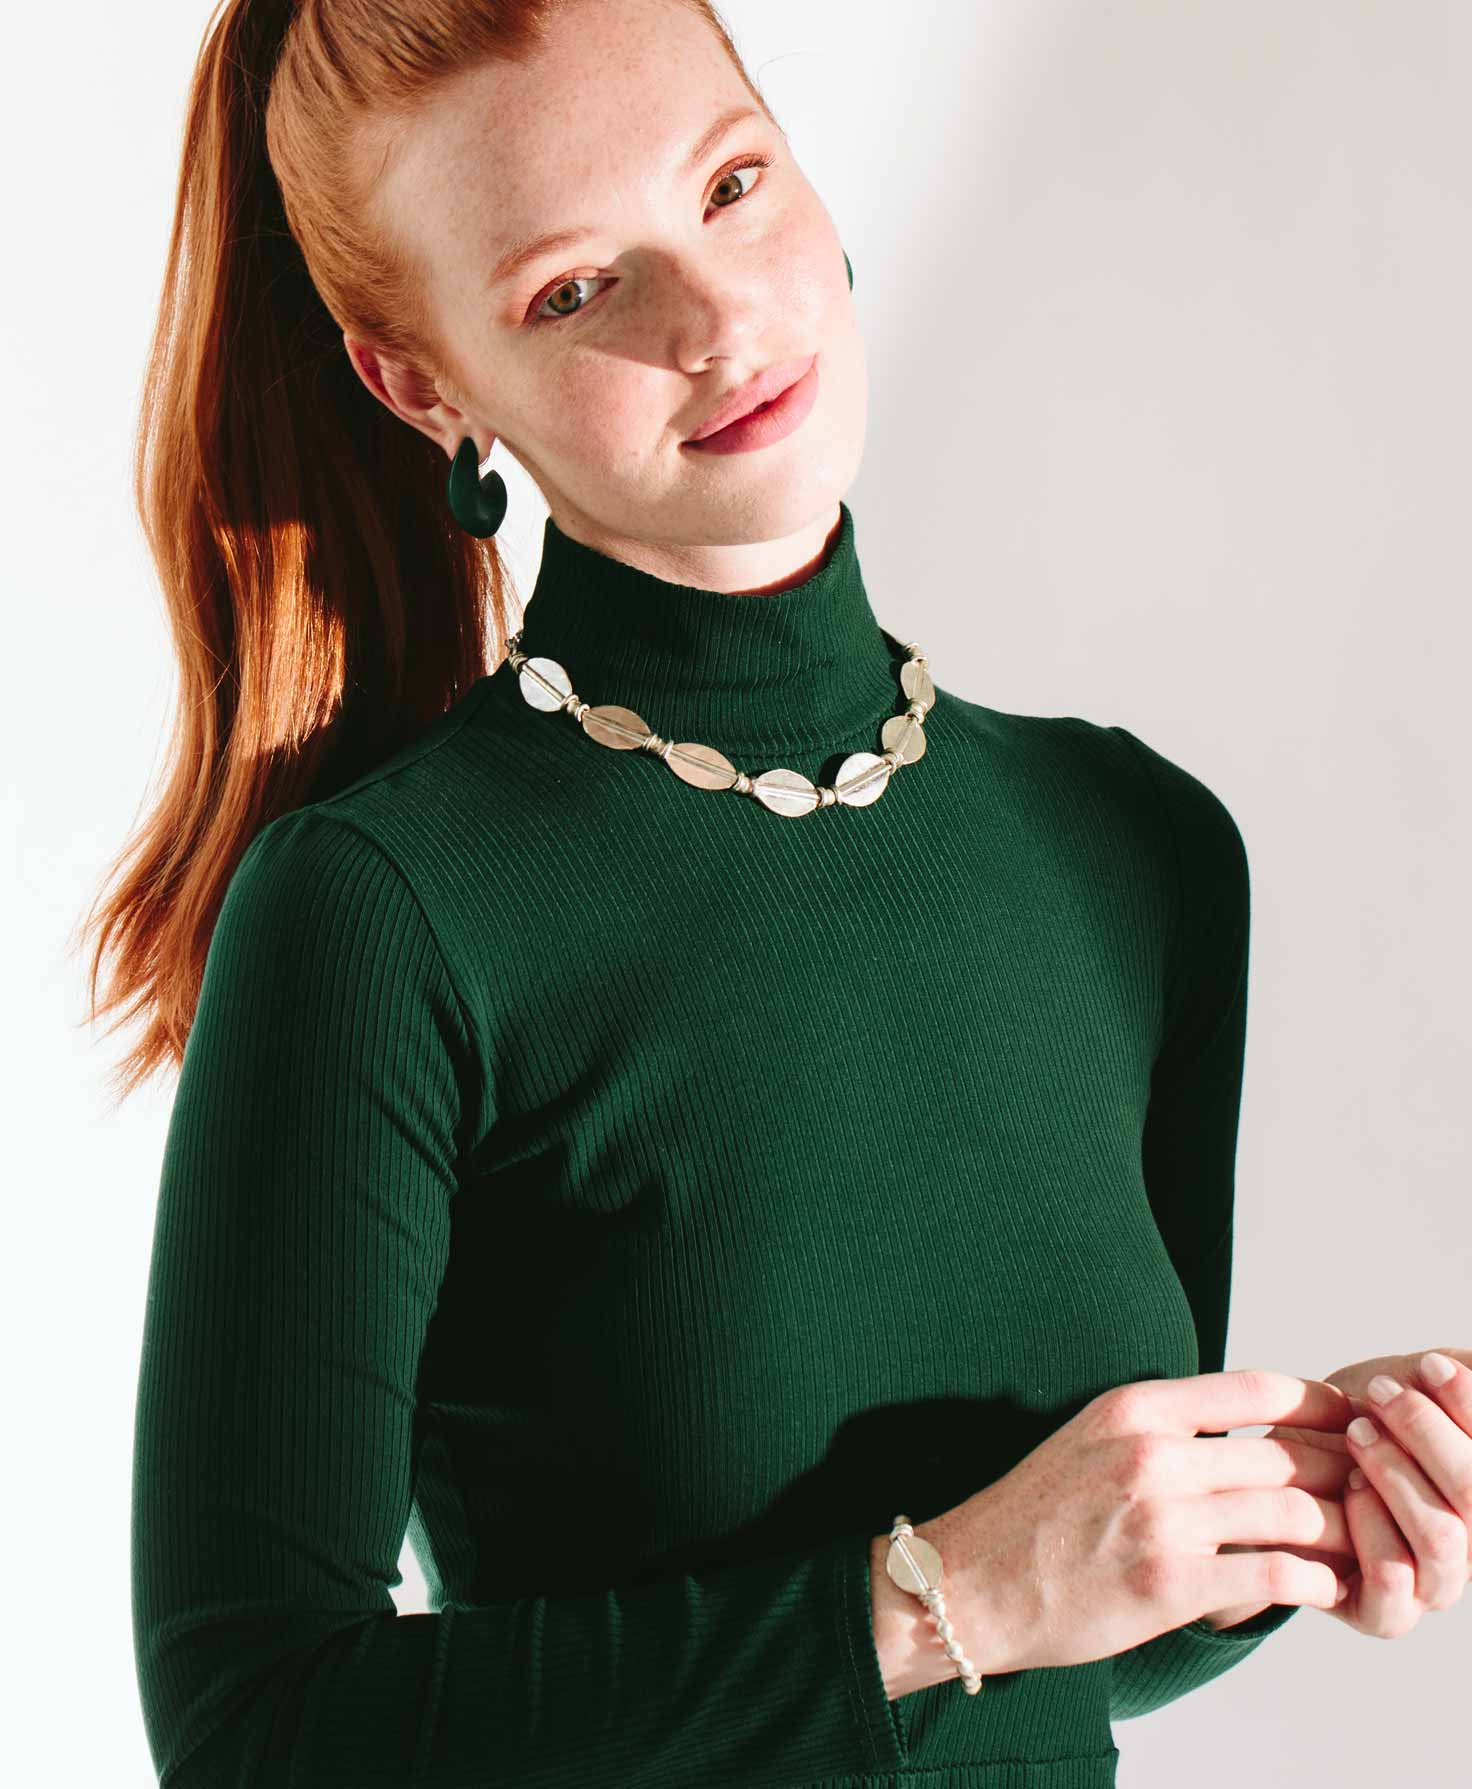 A model wears the Comrade Bracelet paired with a deep emerald green top. She also wears a silver necklace that mirrors the shade of the bracelet. The bright silver jewelry stands out against the dark top.